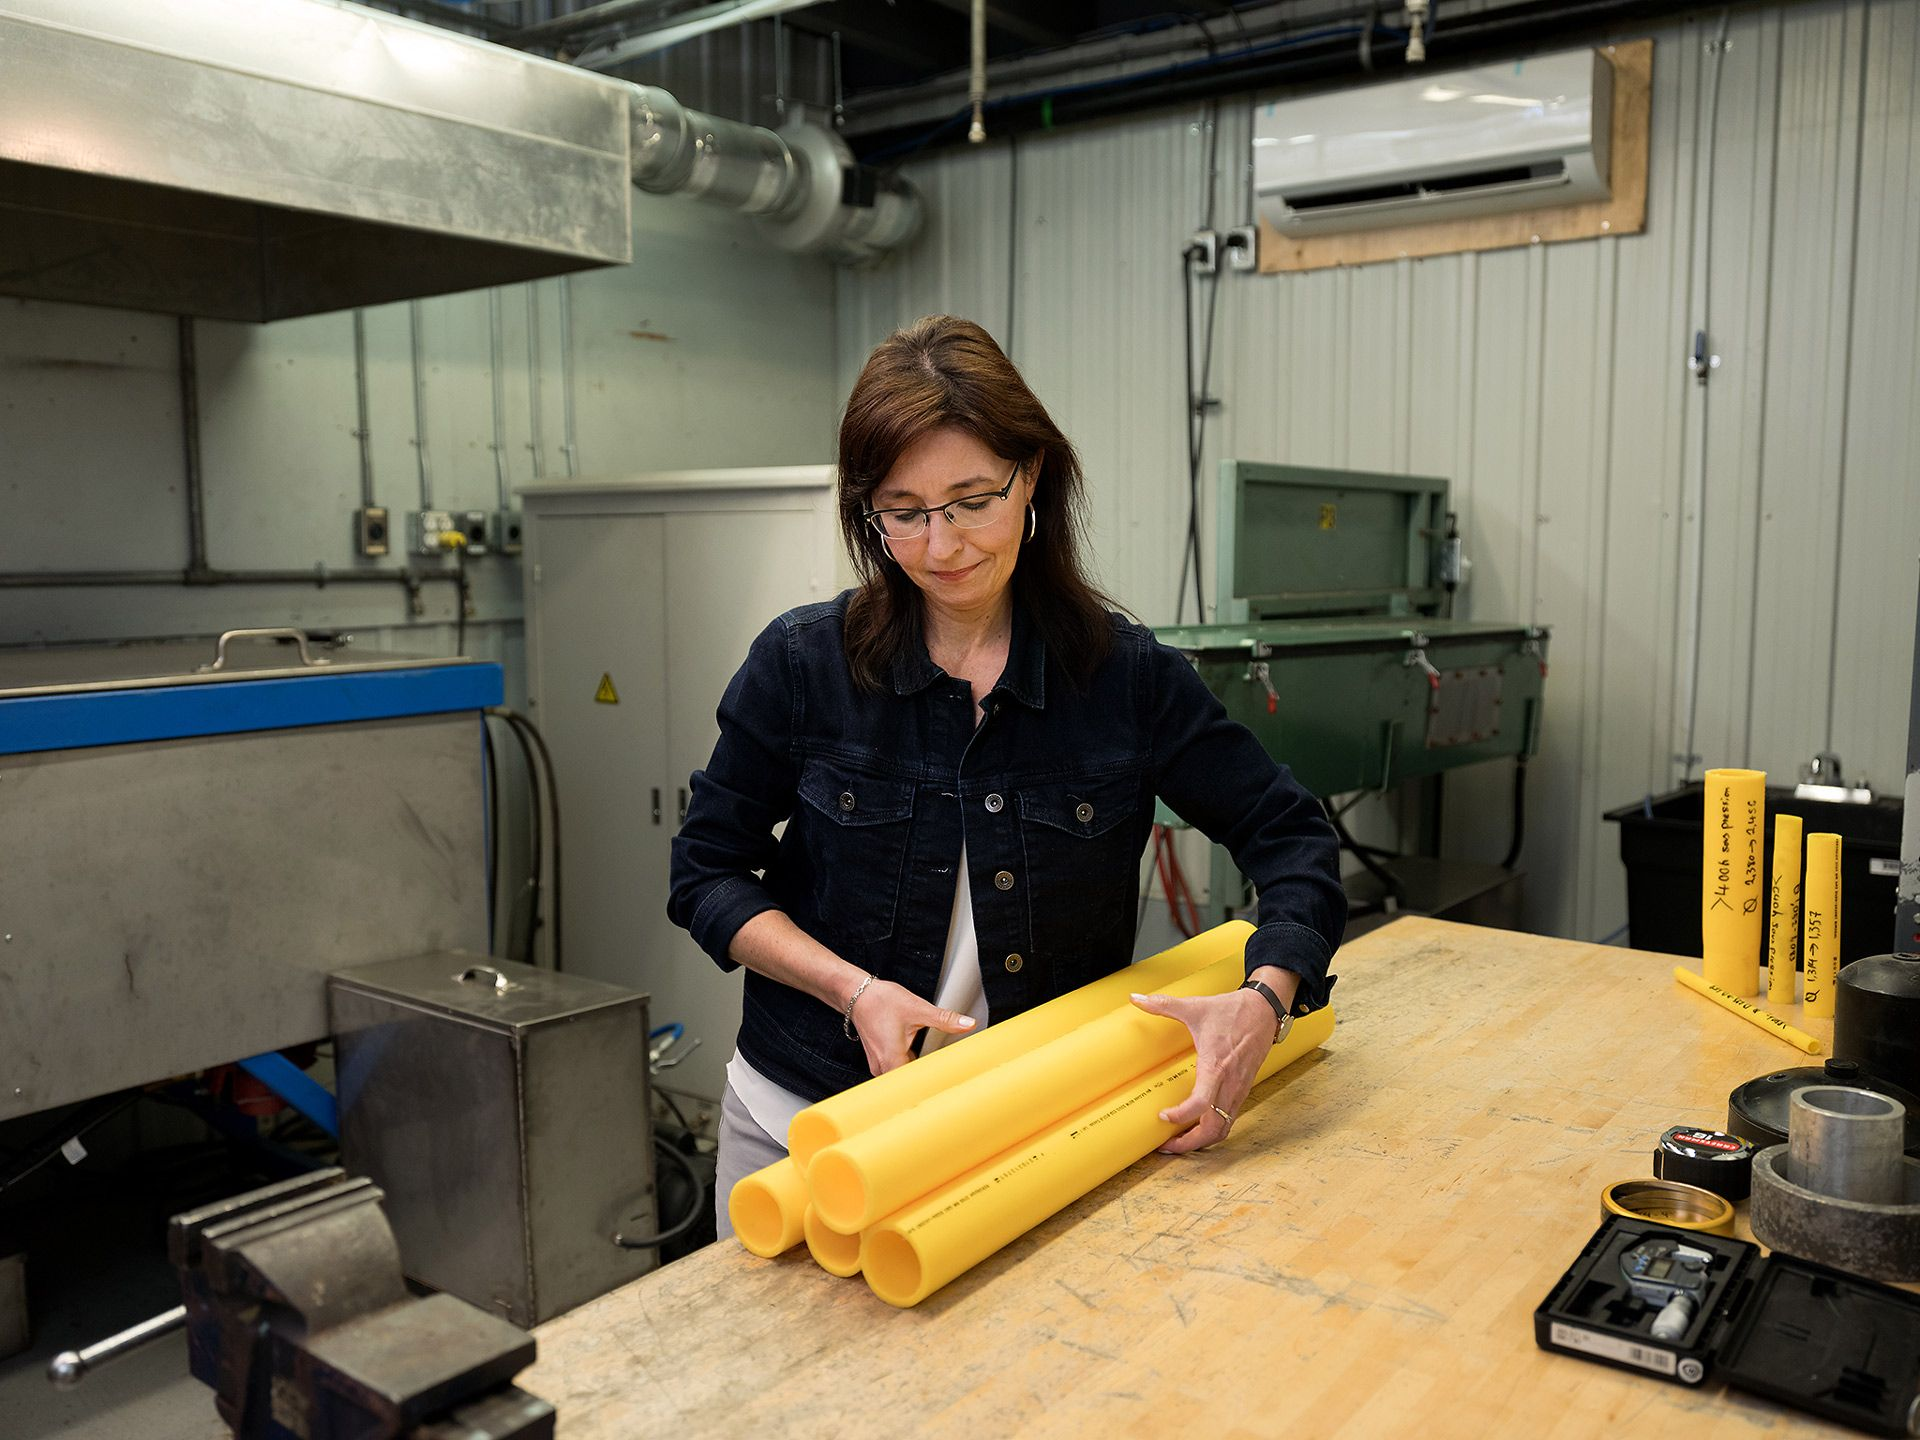 Woman in a factory grabbing 5 yellow pipes on a table.